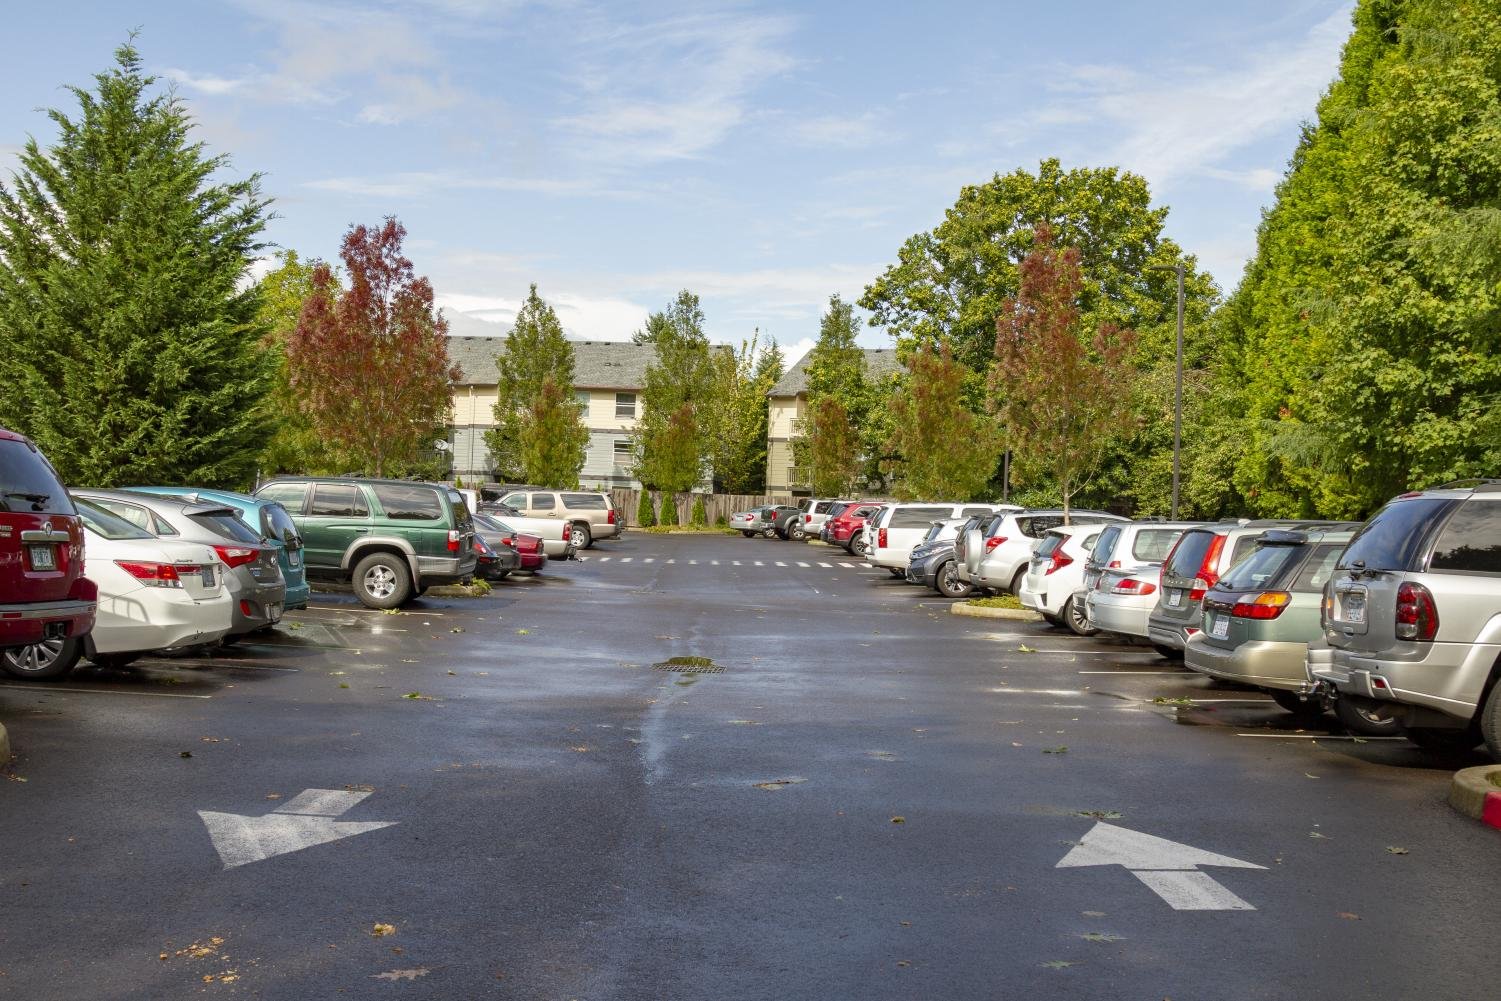 Only 42 spots are now available to La Salle student drivers who park in the Christ the King parking lot.